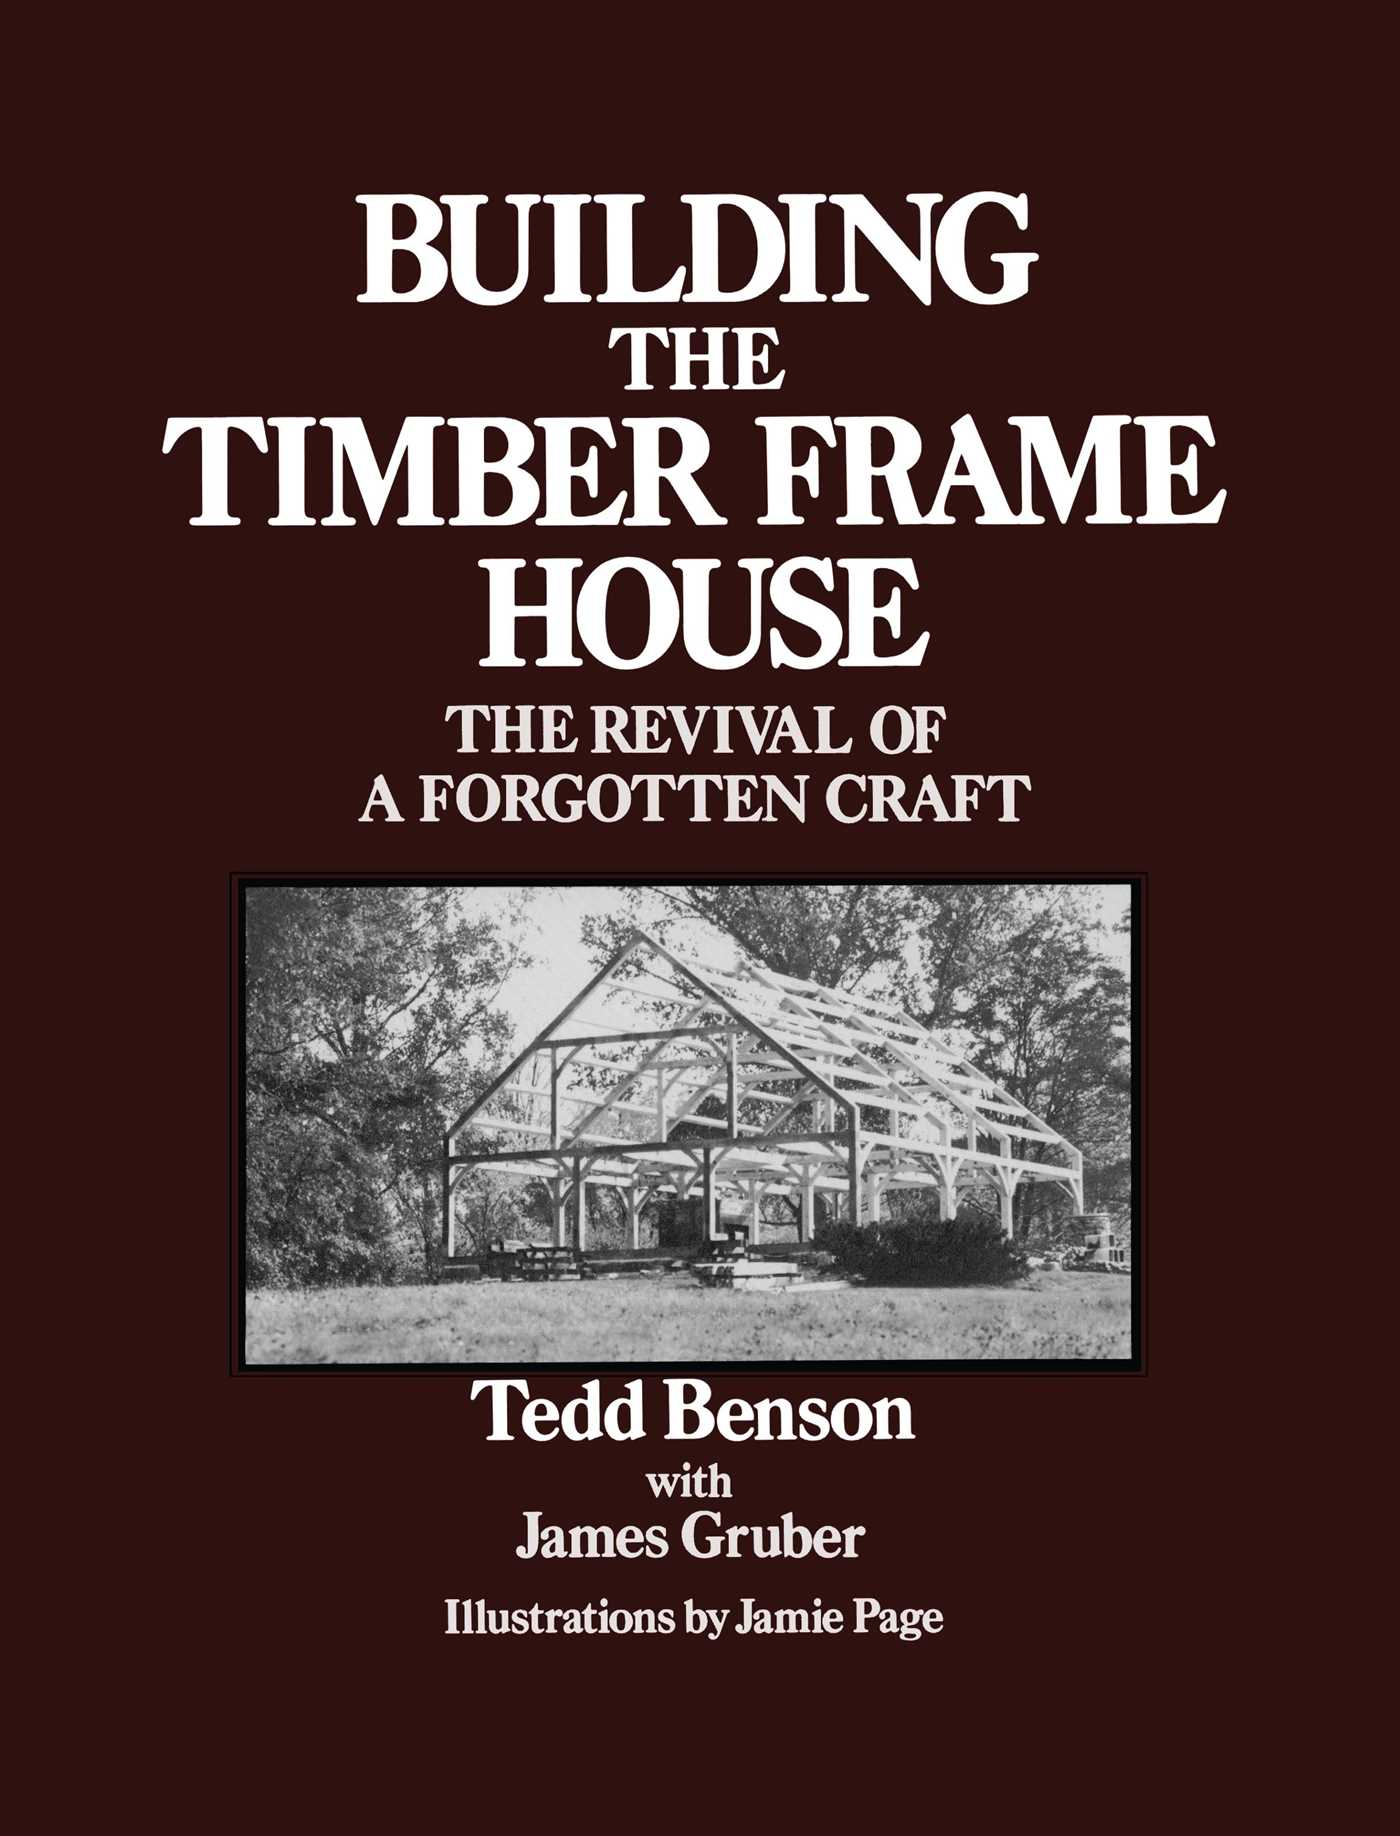 Building-the-timber-frame-house-9780684172866_hr